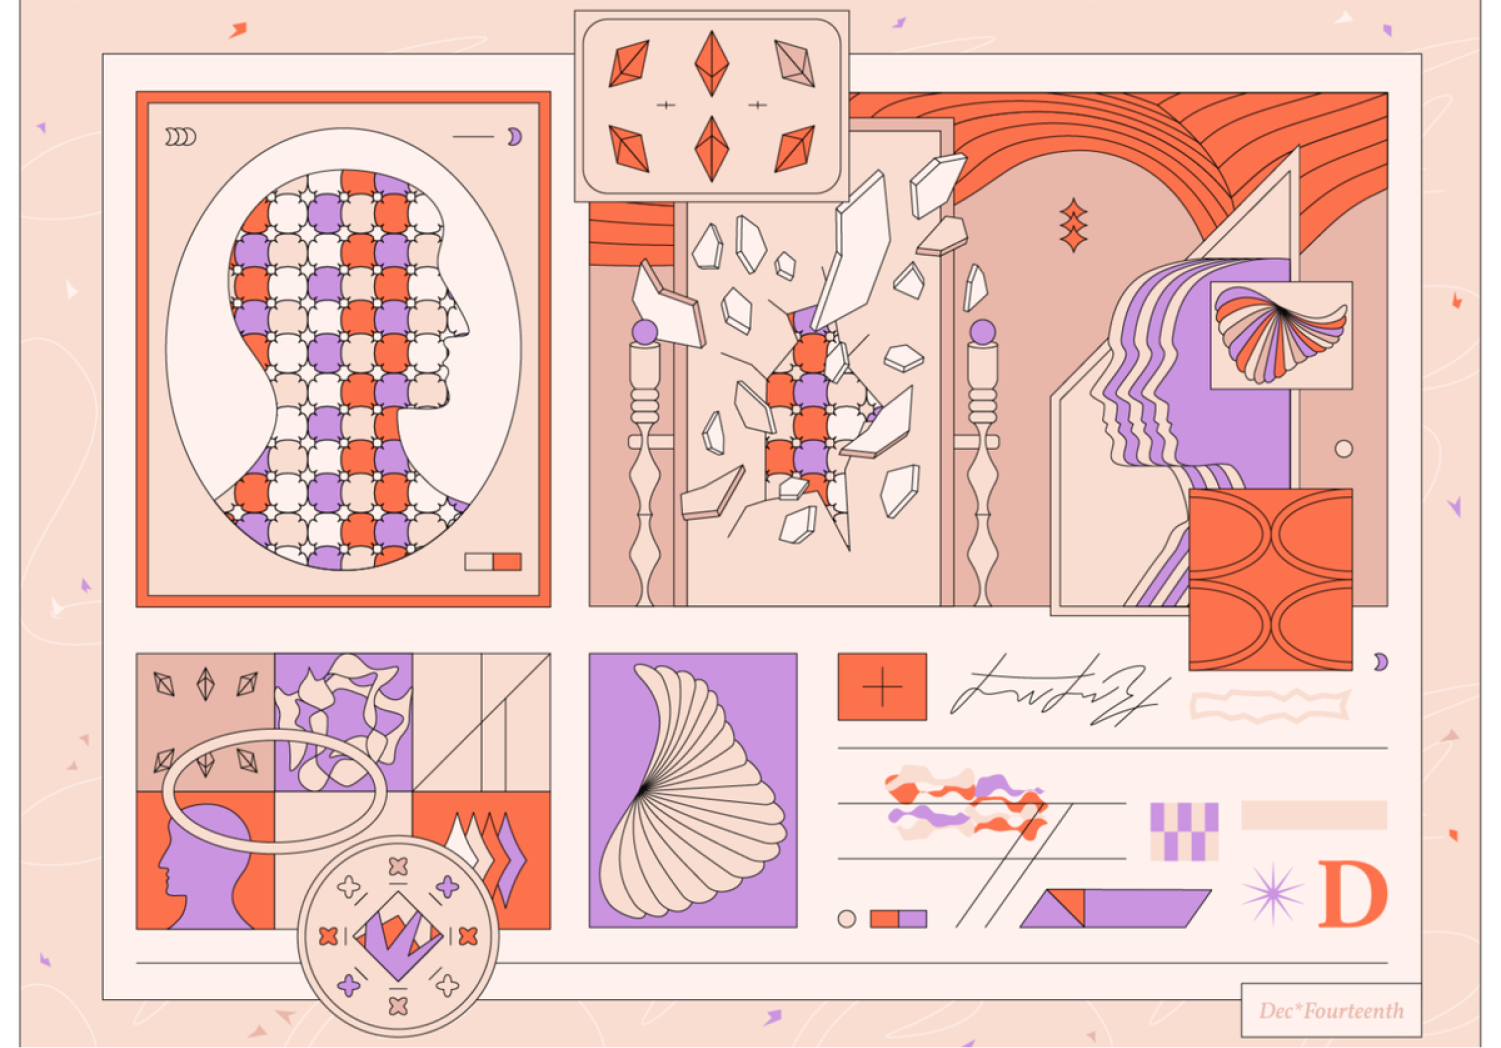 An illustration from Dribbble portraying abstract psychology